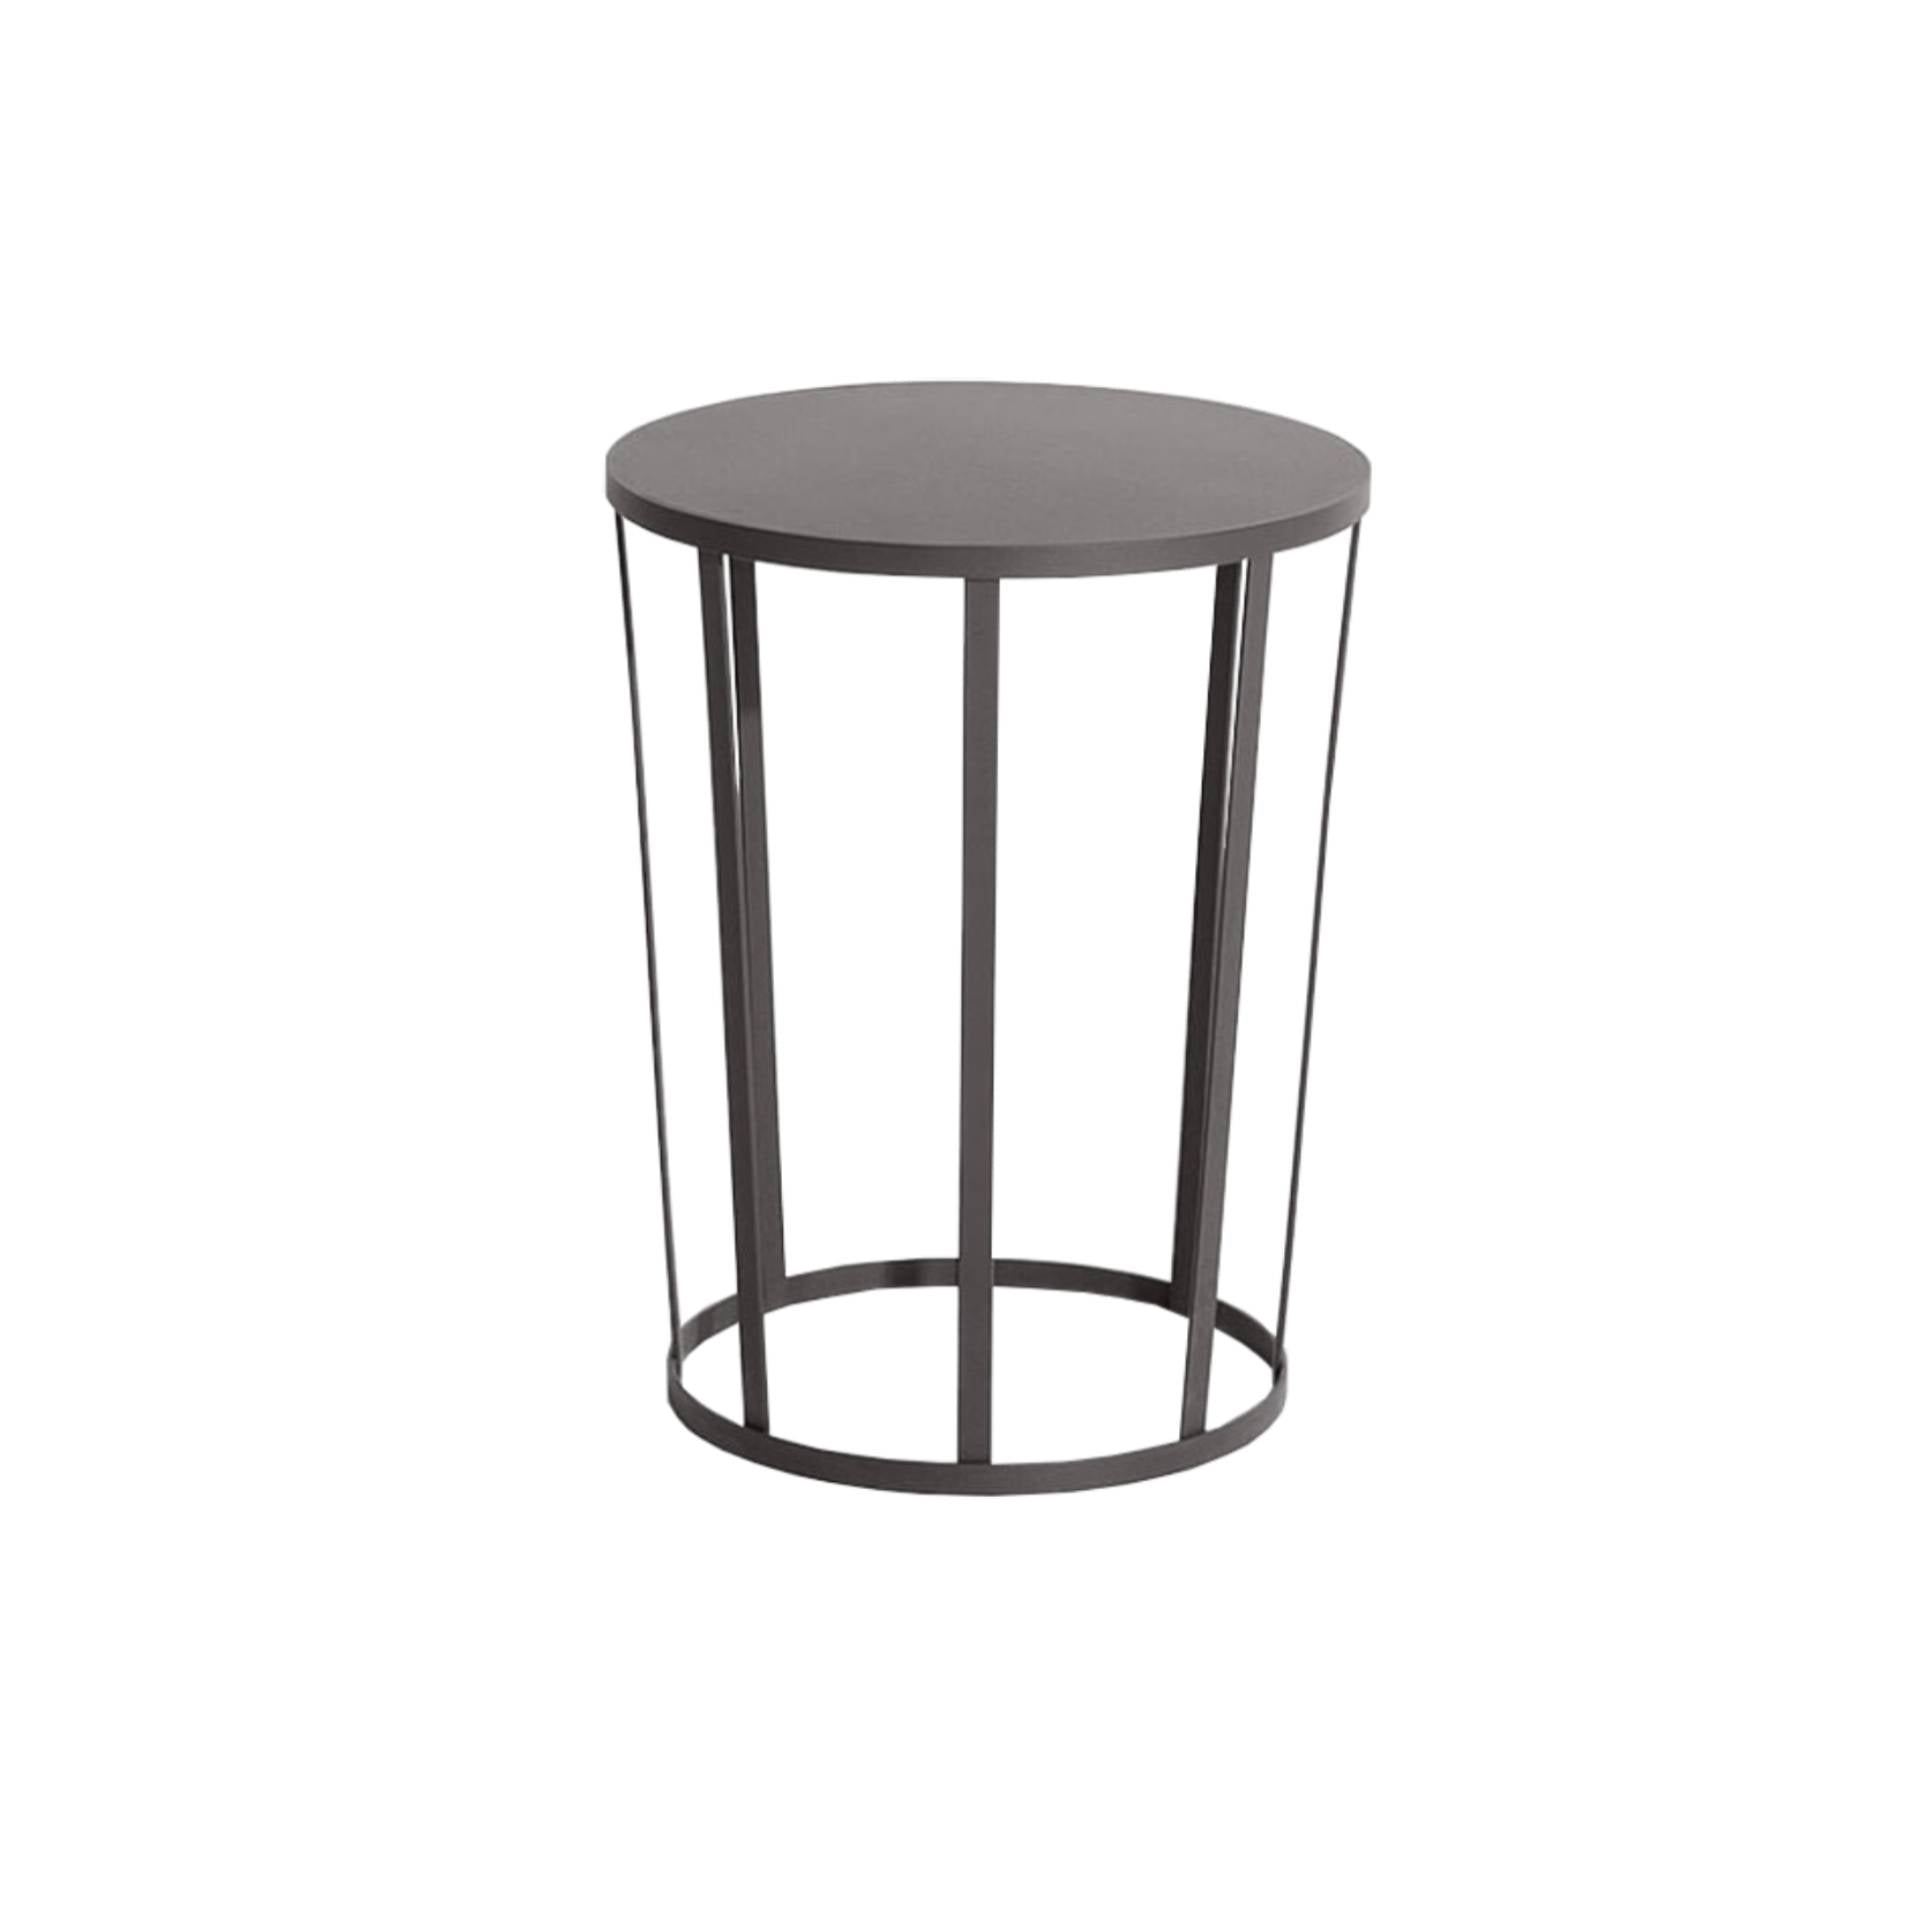 Hollo Side Table/Stool: Anthracite